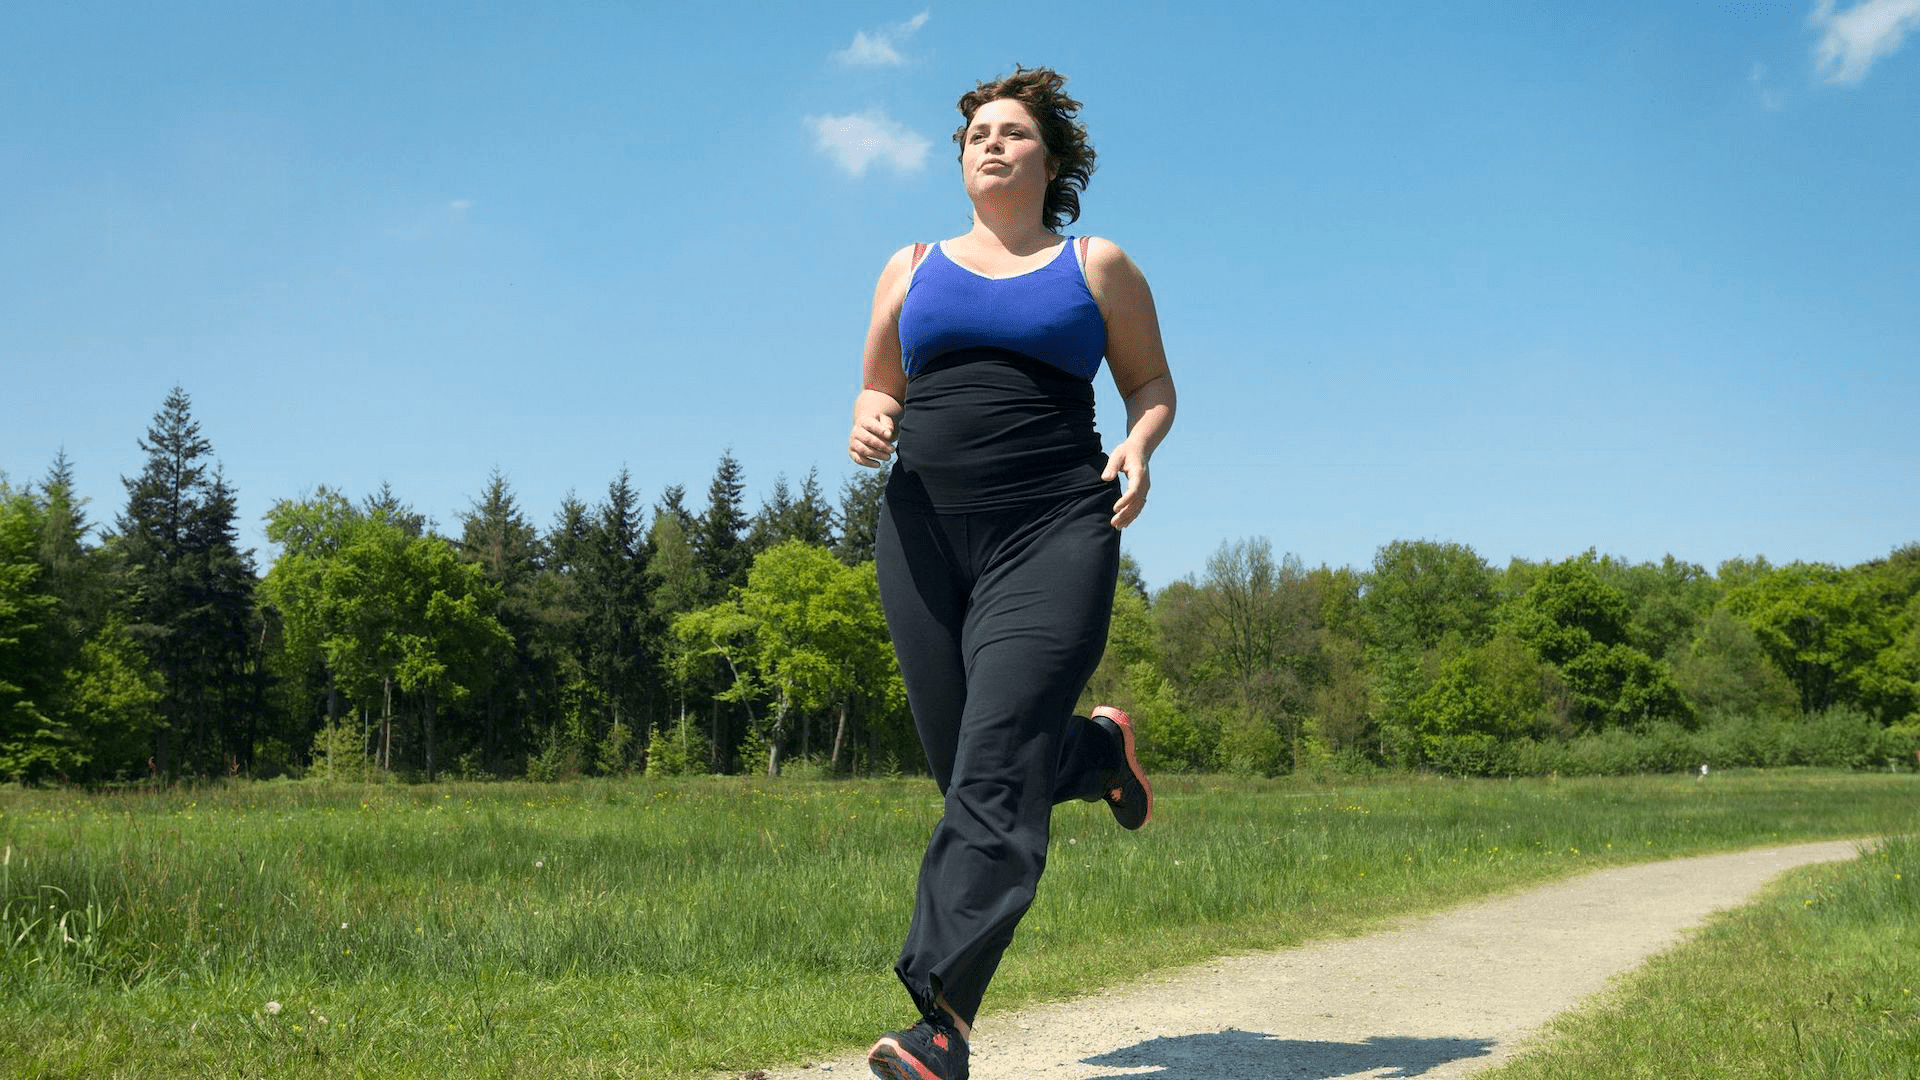 Want to Lose Weight? Ditch Exercise. Diet Is the Only Answer, Says Duke Scientist.